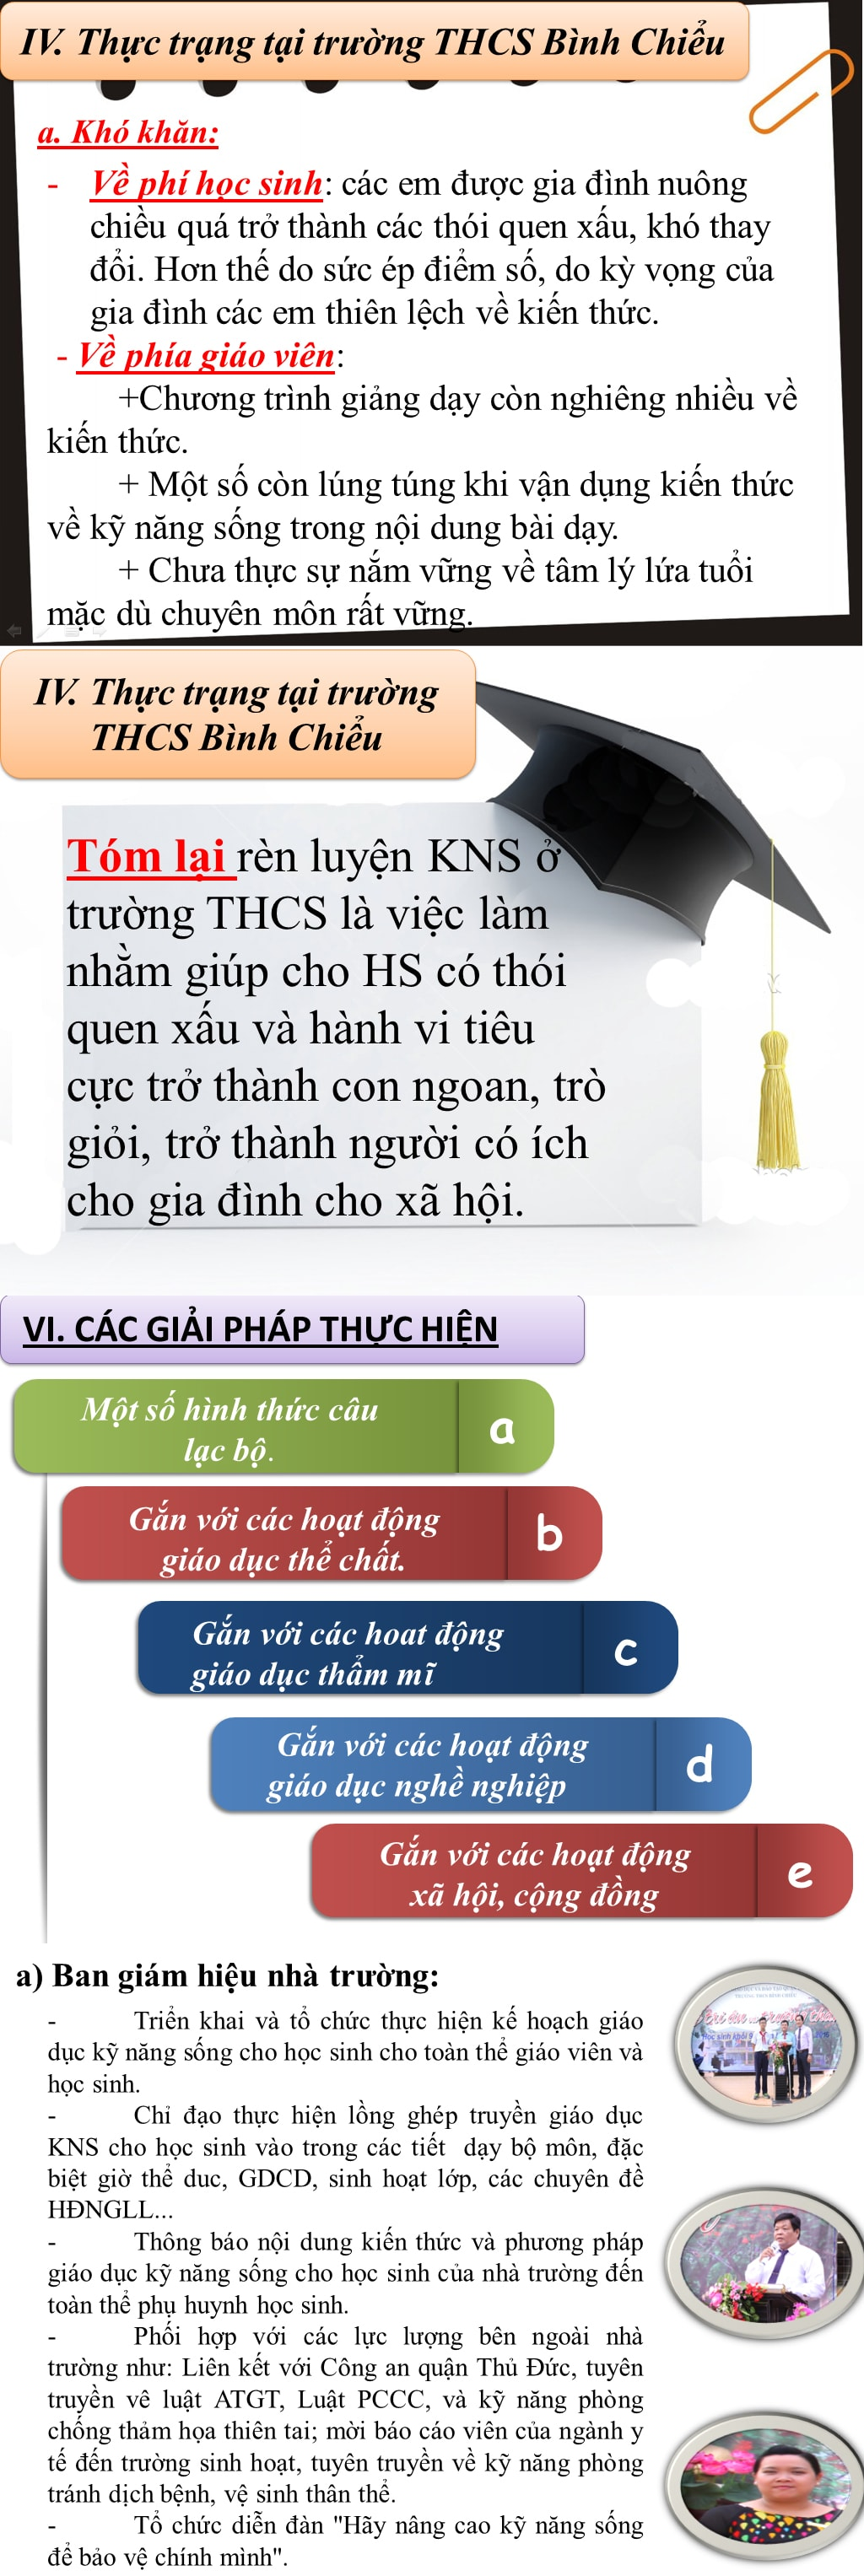 do quoc thinh 3